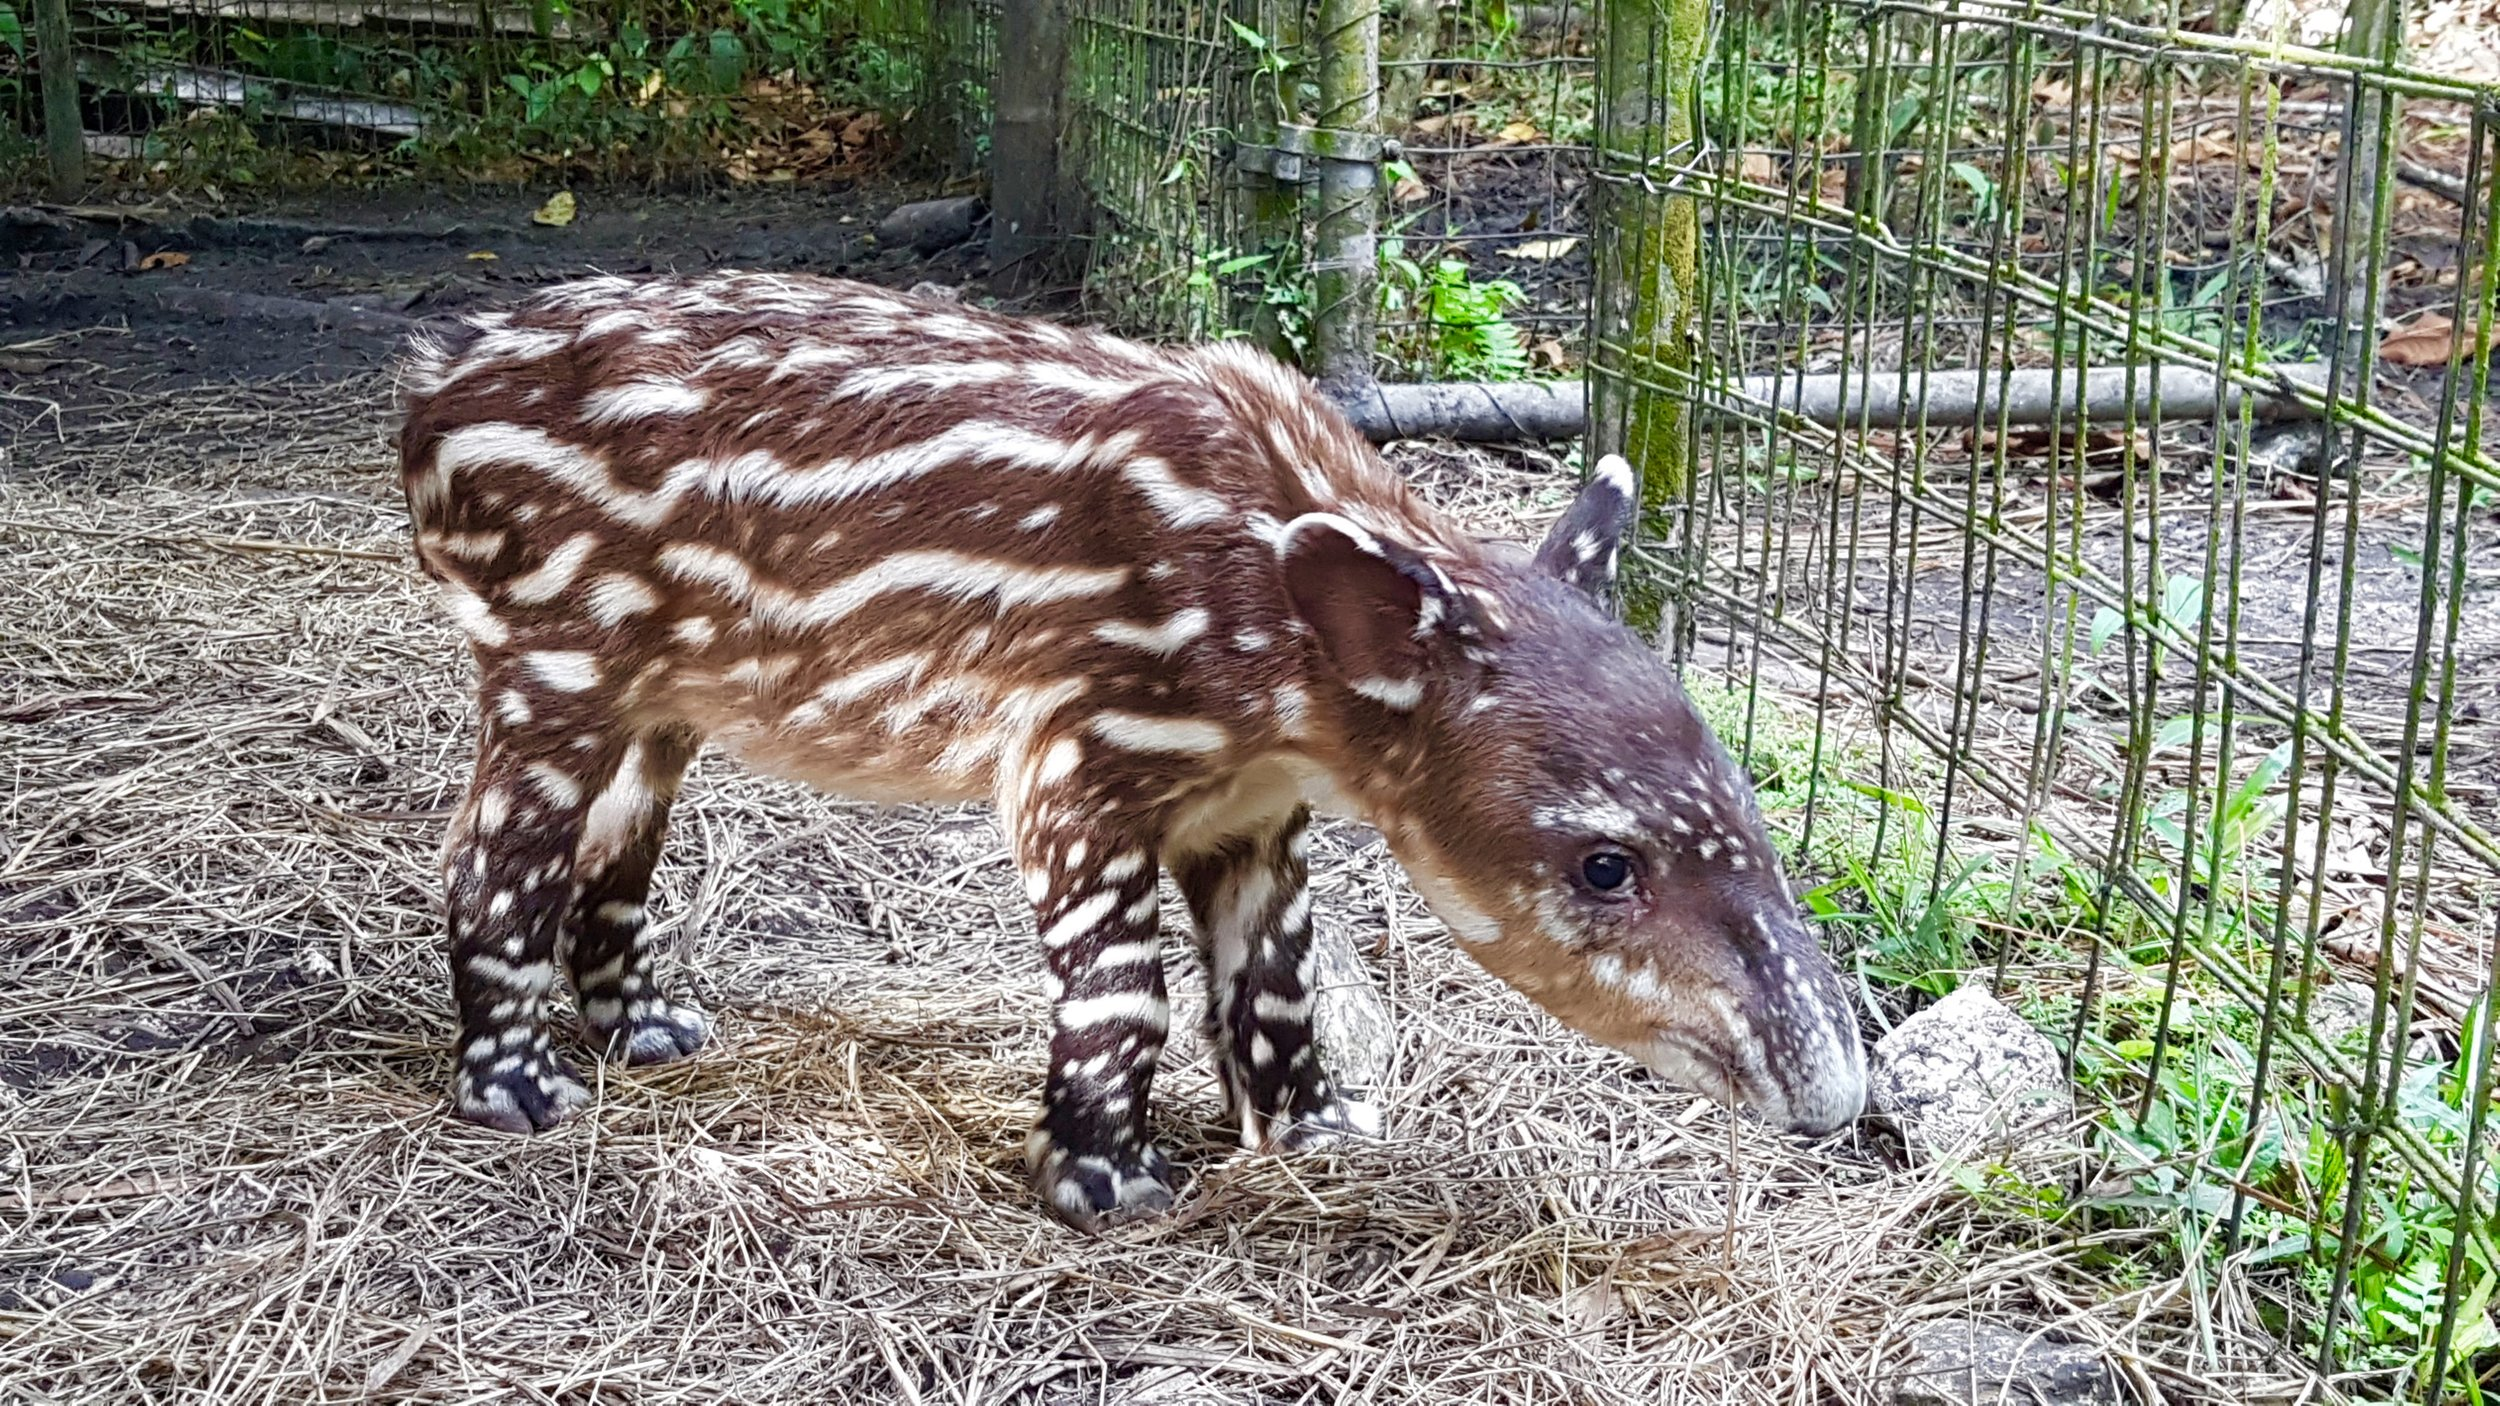 """Cuteness overload: Two of the zoo's tapirs, Navidad and Fuego, had a baby while Cristal was there. """"They still had a really good relationship. They still spend a lot of time together, which was really sweet."""" Also, they are vegetarian and banana is their favorite snack."""